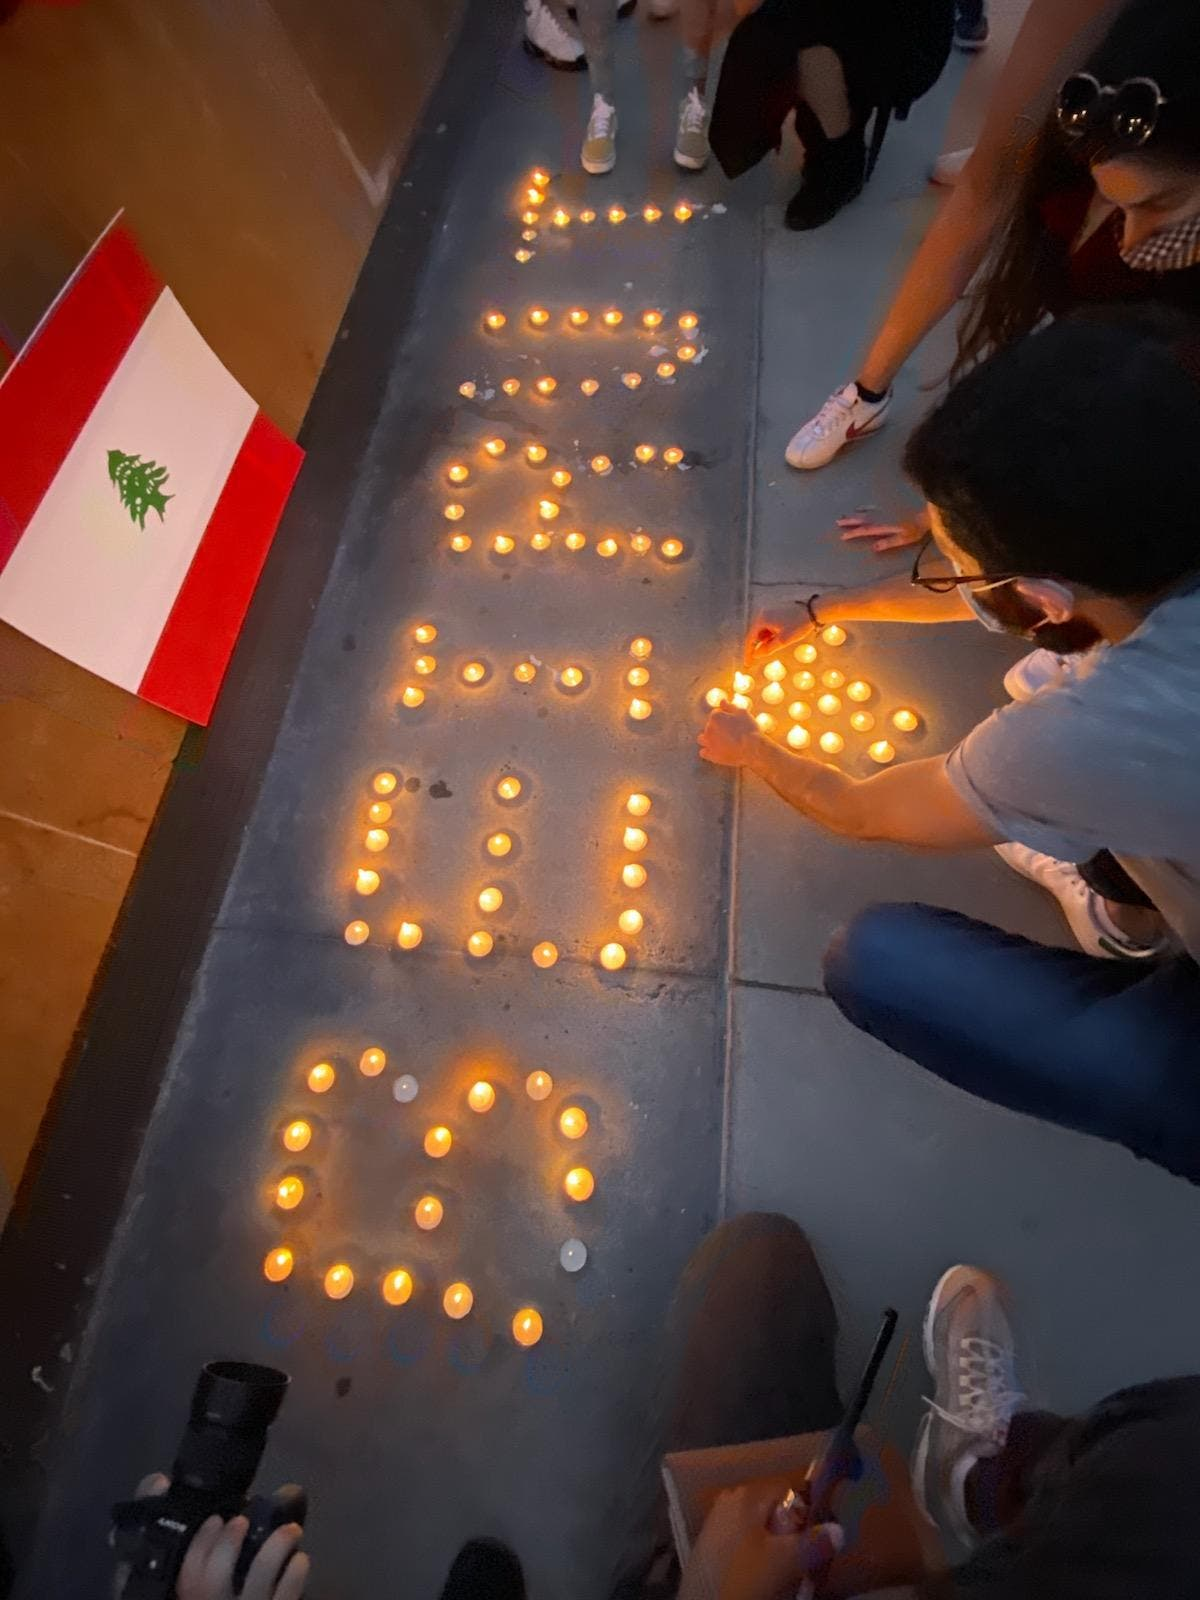 A candlelight vigil held outside San Jose City Hall in San Jose, California, honor of the victims of the Beirut explosion, August 8. (Albert Karam)